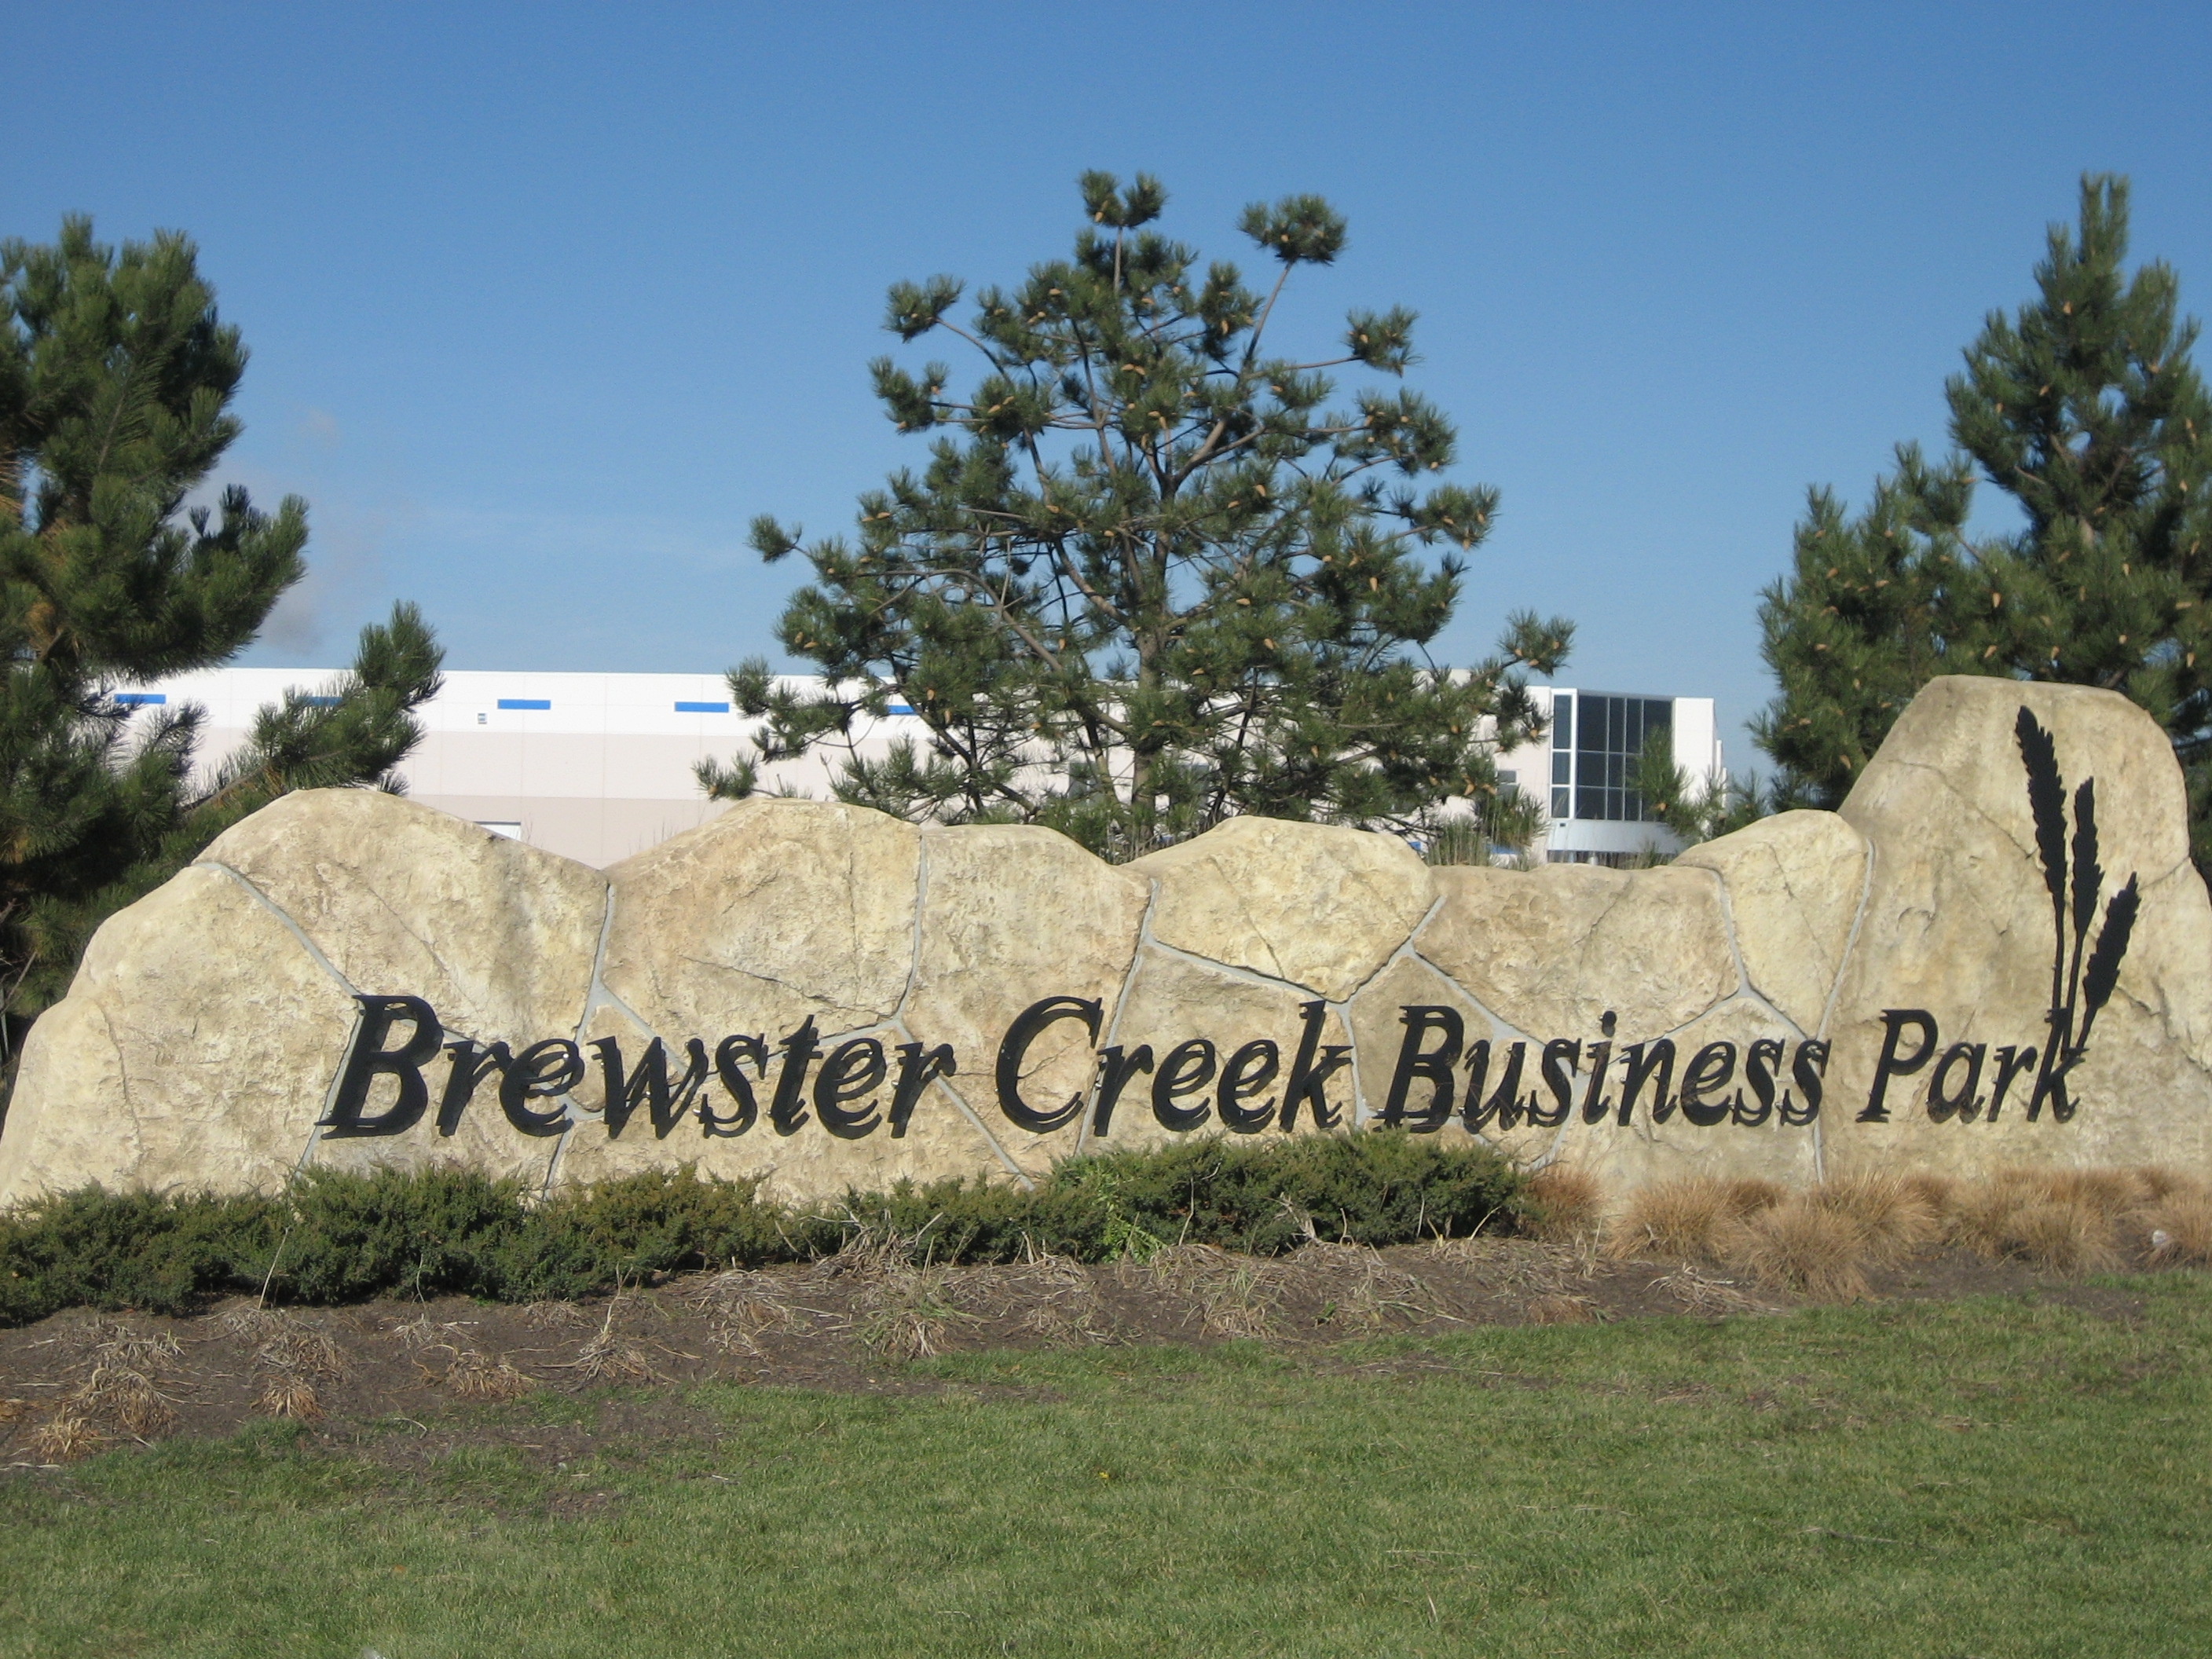 Brewster Creek Business Park